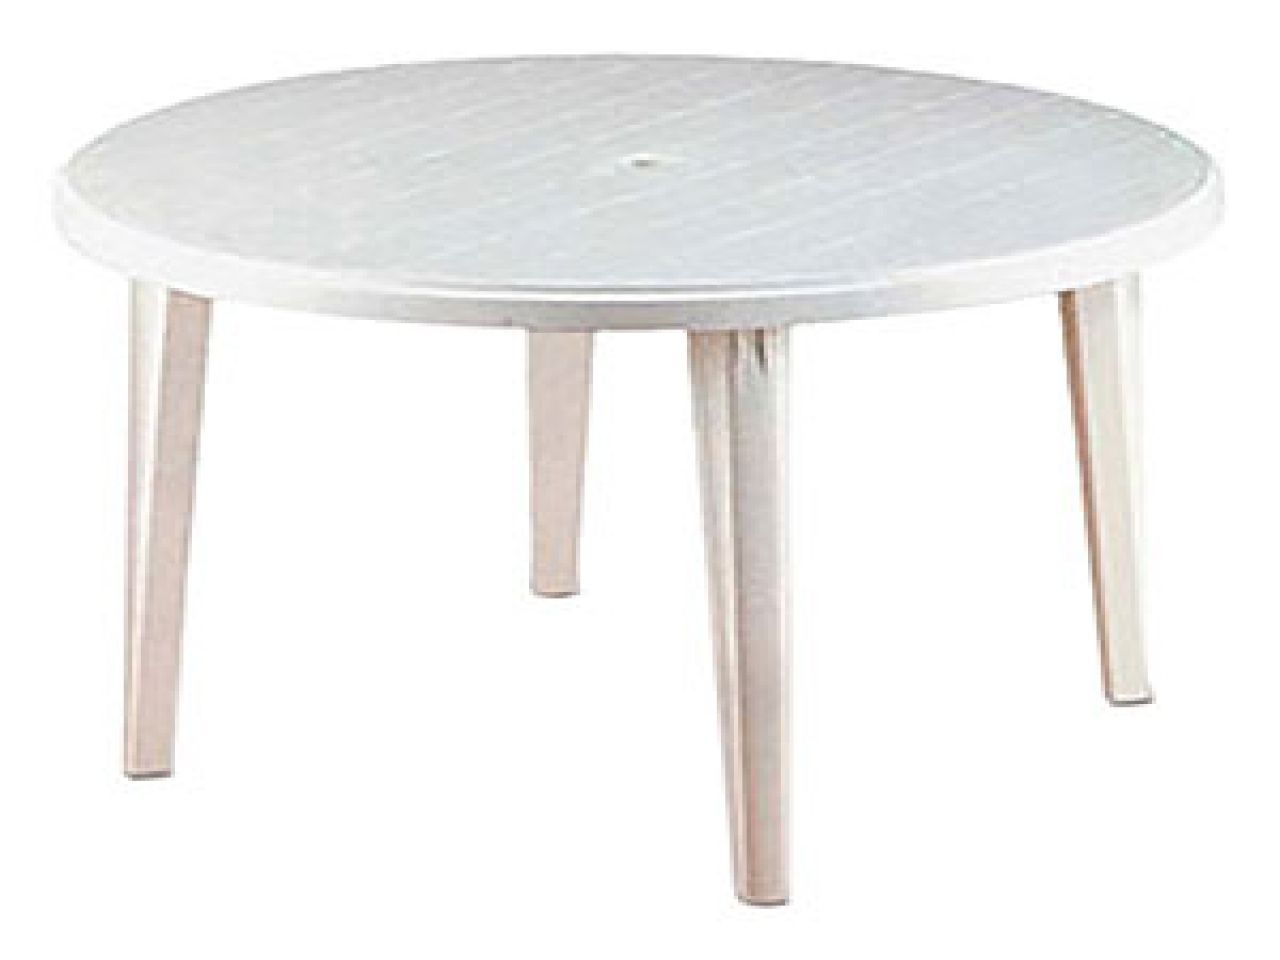 50 Plastic Round Tables Modern Italian Furniture Check More At Http Www Nikkitsfun Com Plastic Roun Modern Table Design Patio Table Rattan Patio Furniture